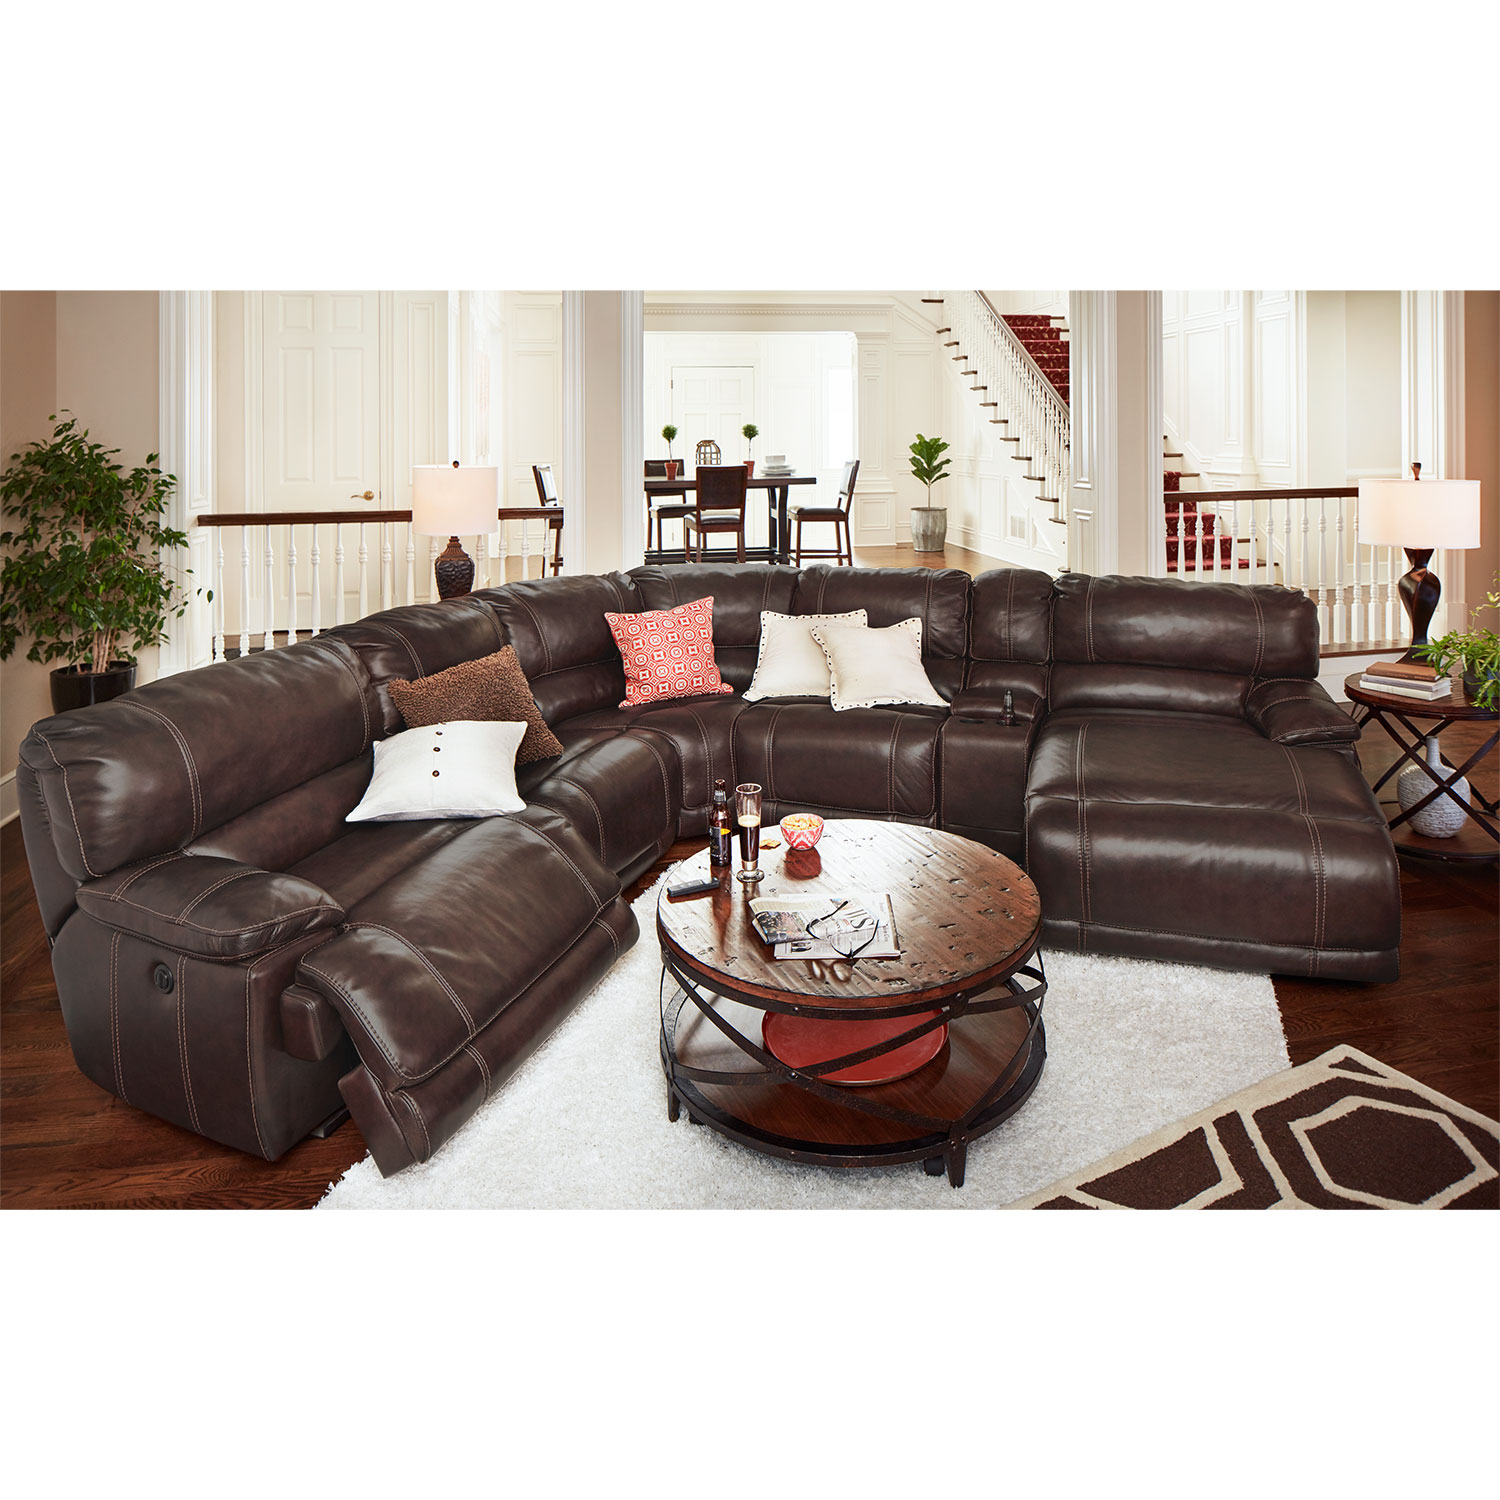 St. Malo 6-Piece Power Reclining Sectional with Right-Facing Chaise - Brown by One80  sc 1 st  American Signature Furniture : sectional power recliner - Sectionals, Sofas & Couches